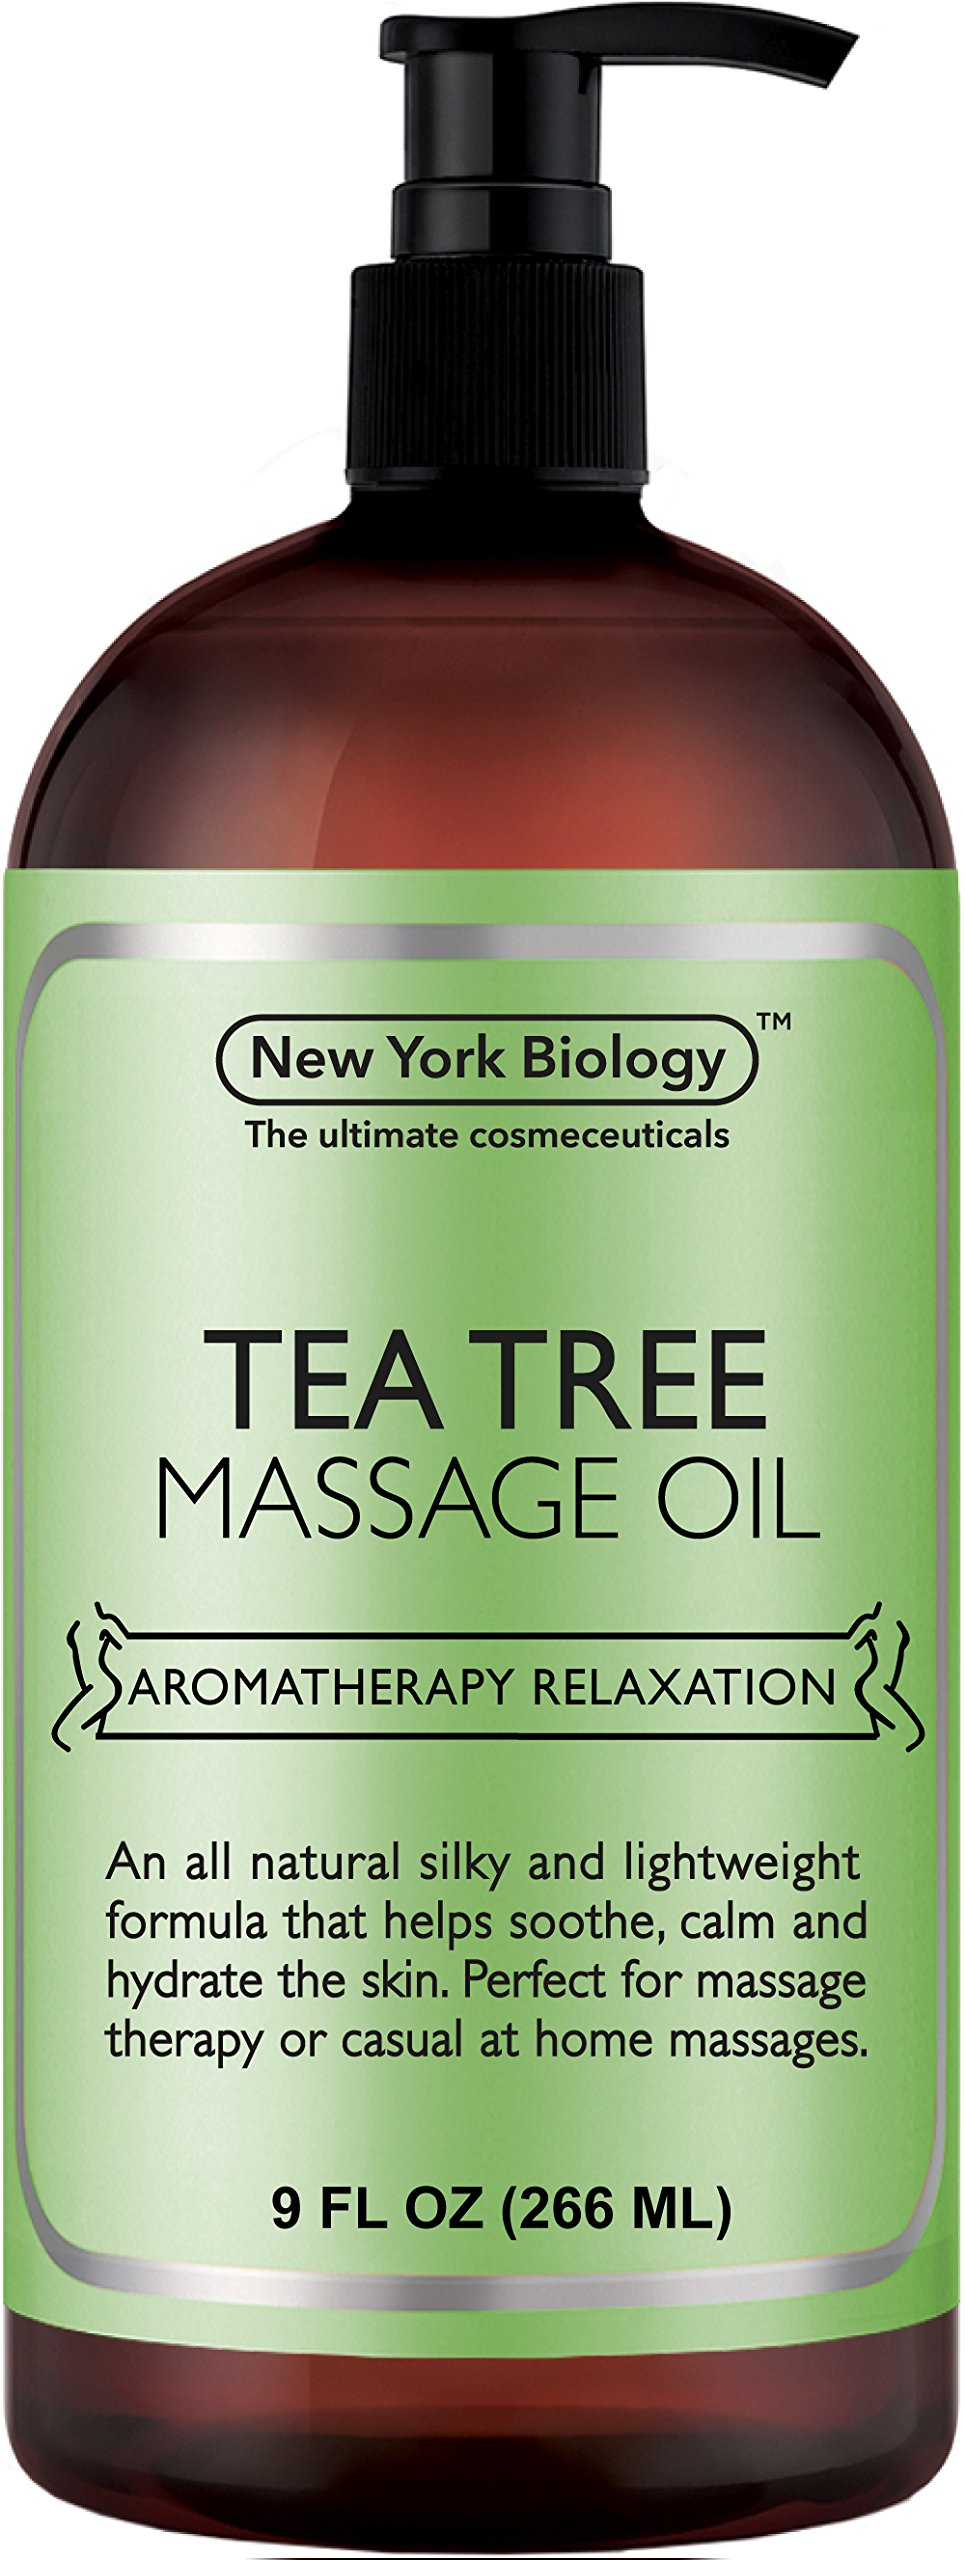 New York Biology Tea Tree Massage Oil - 100% All Natural Ingredients - Sensual Body Oil Made with Essential Oils for Muscle Relaxation and Deep Tissue - 9 oz by New York Biology